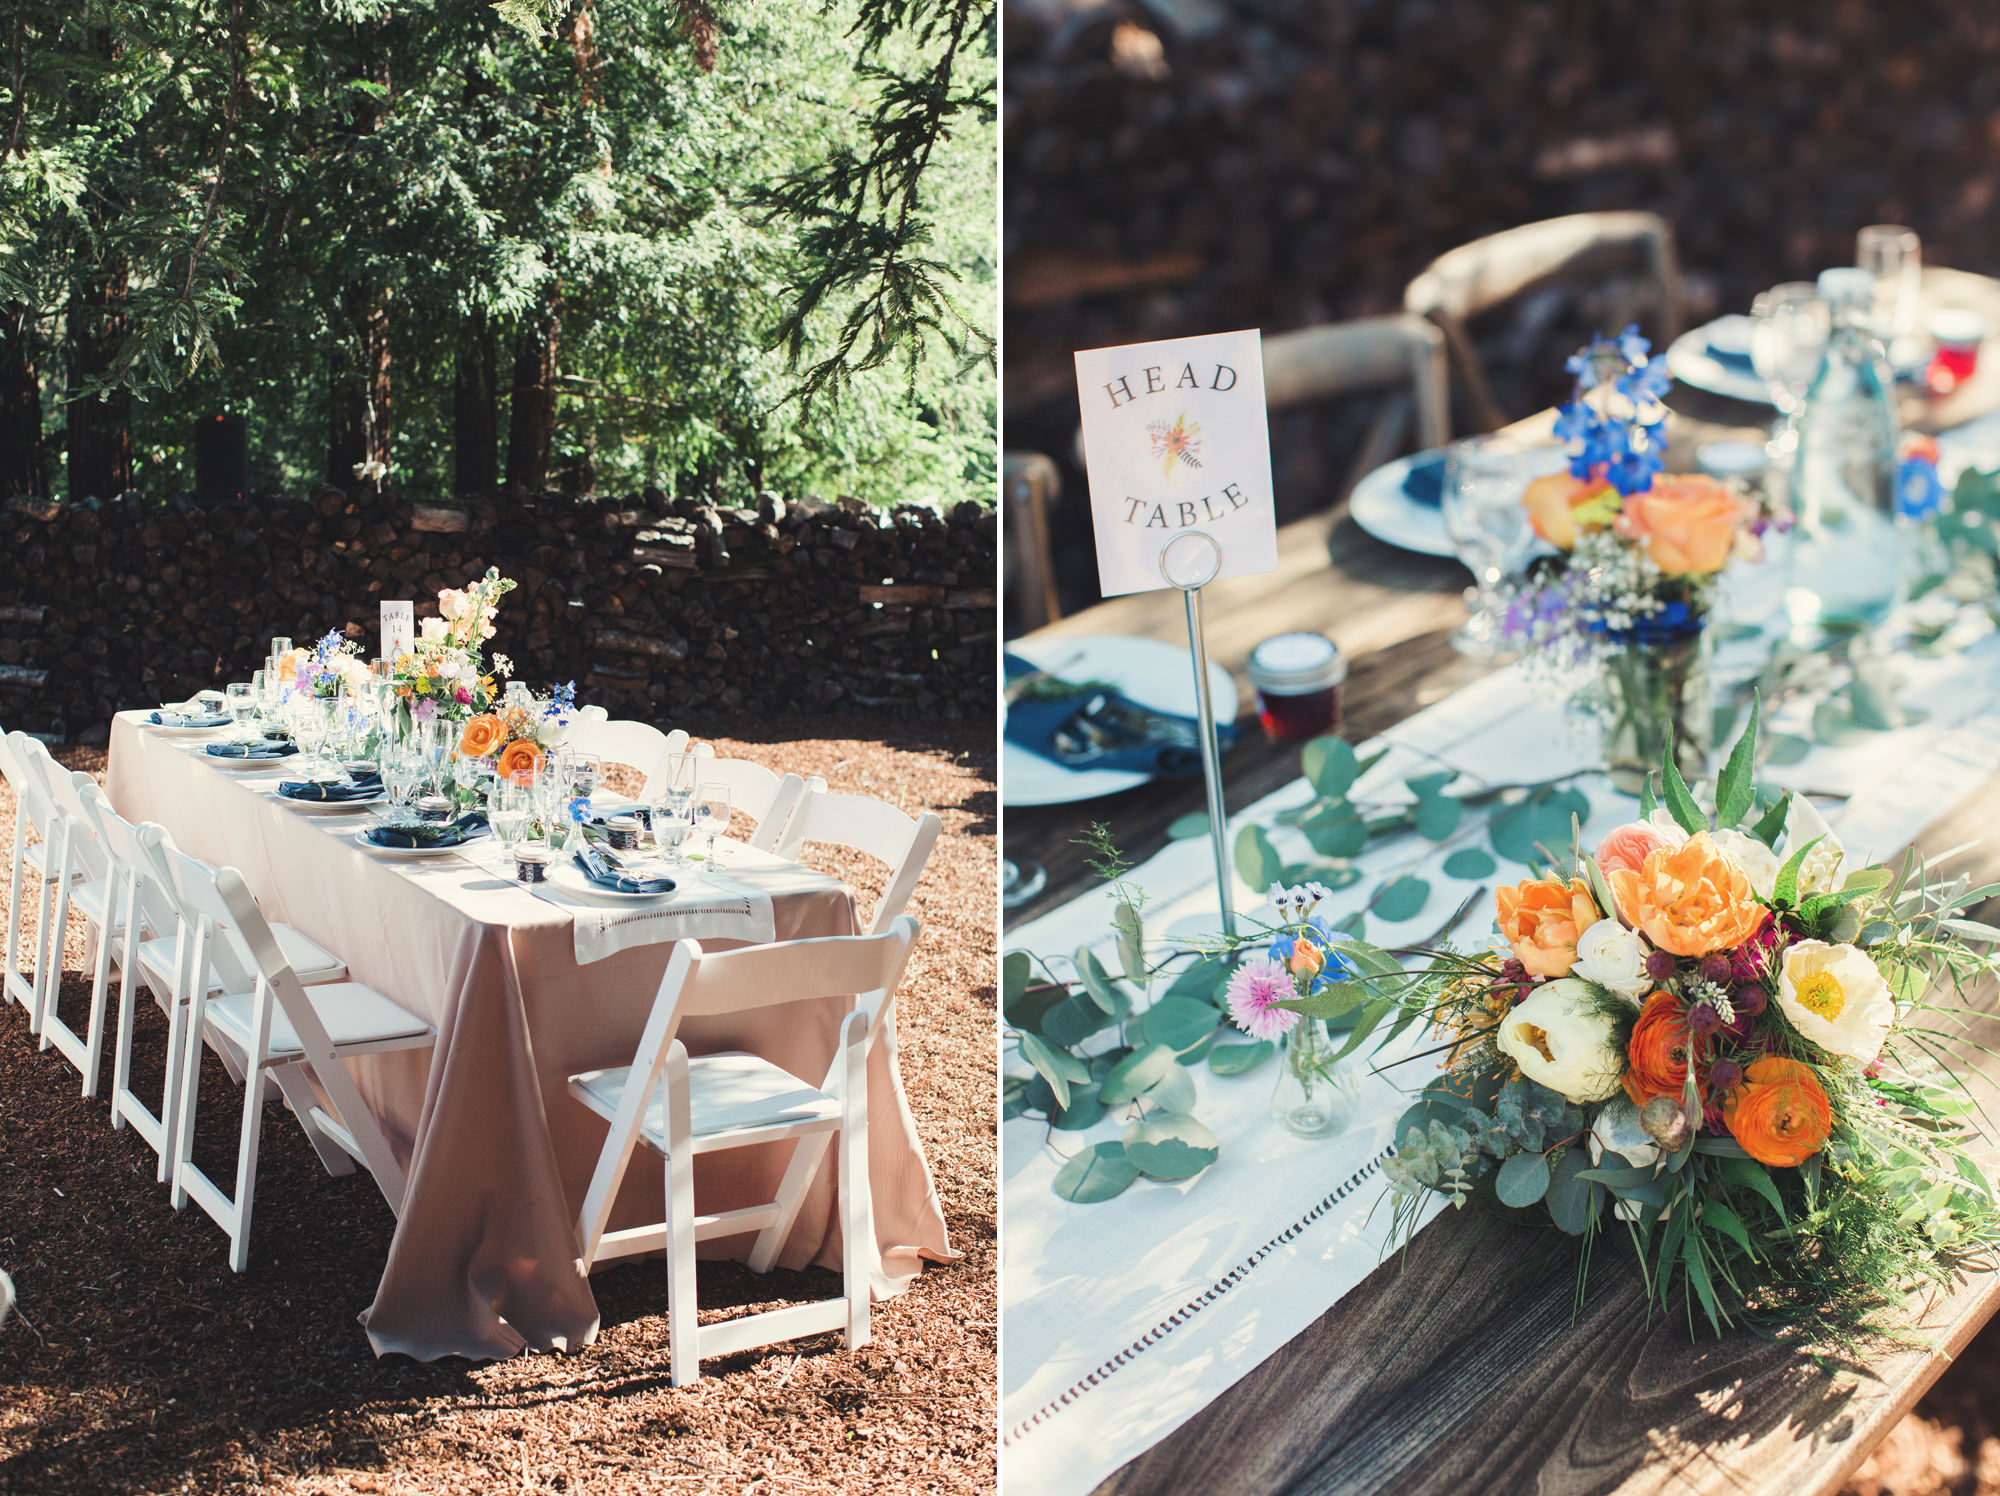 Backyard Wedding in California©Anne-Claire Brun 0021